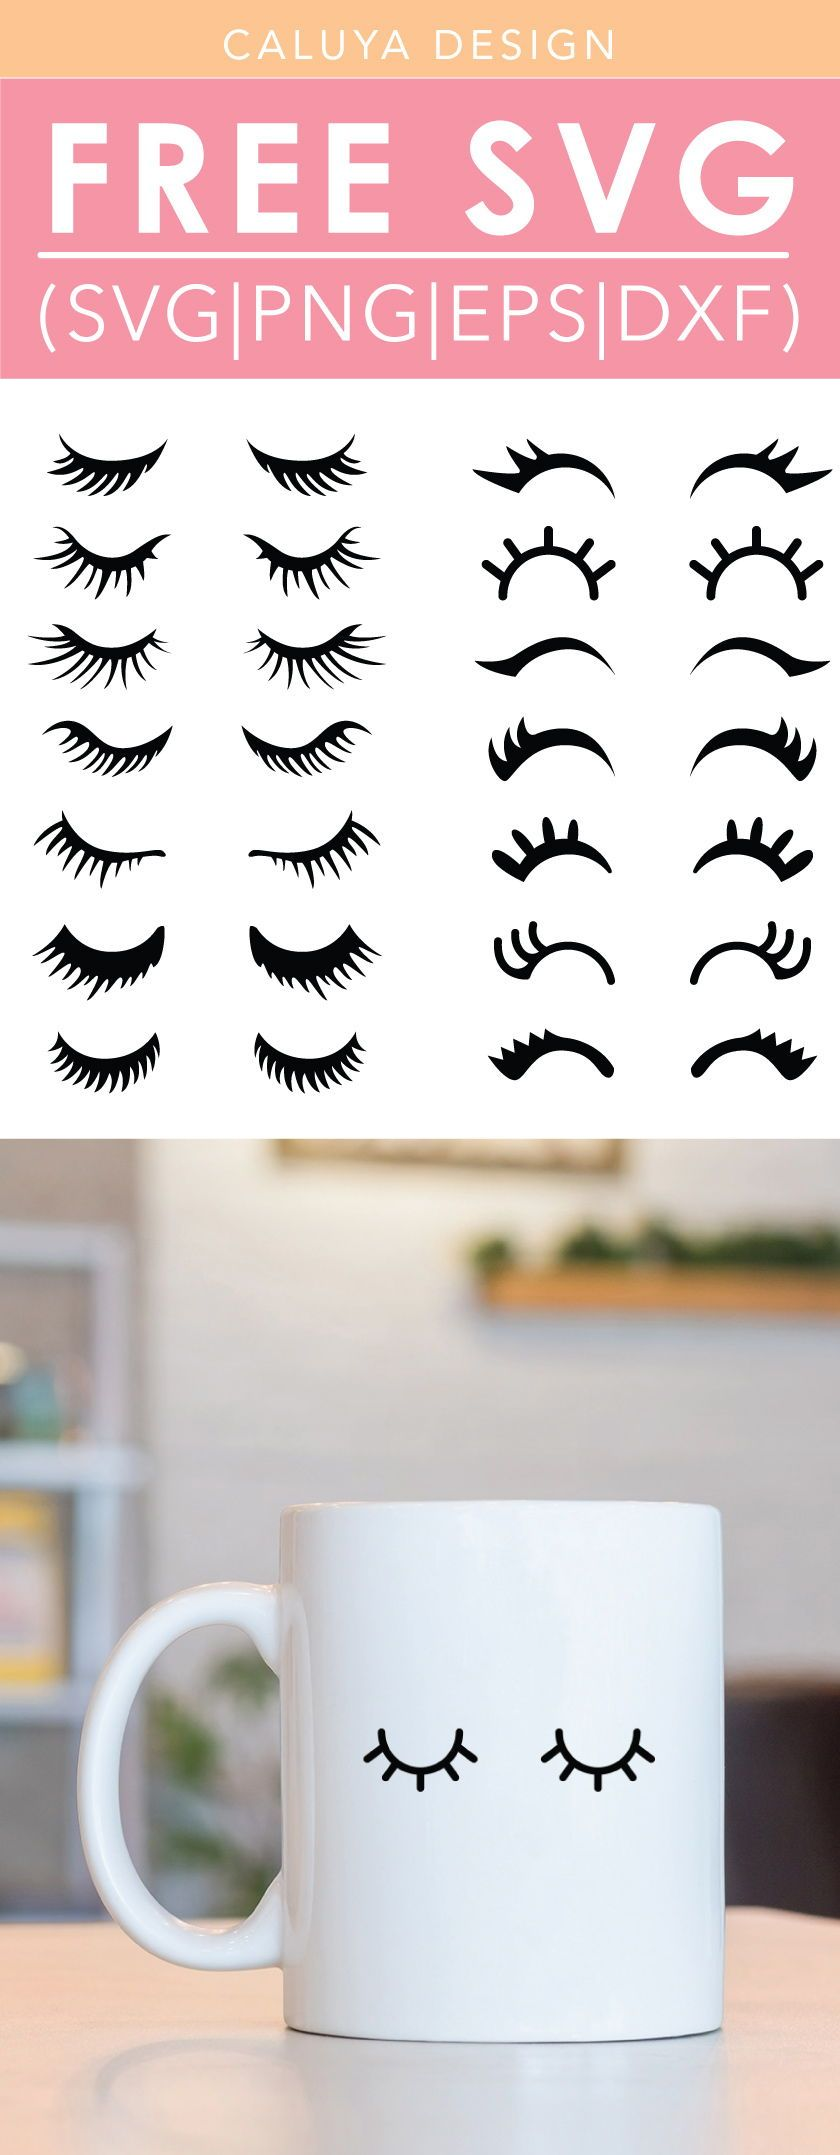 Free Eyelash Bundle SVG, PNG, EPS & DXF by Caluya Design